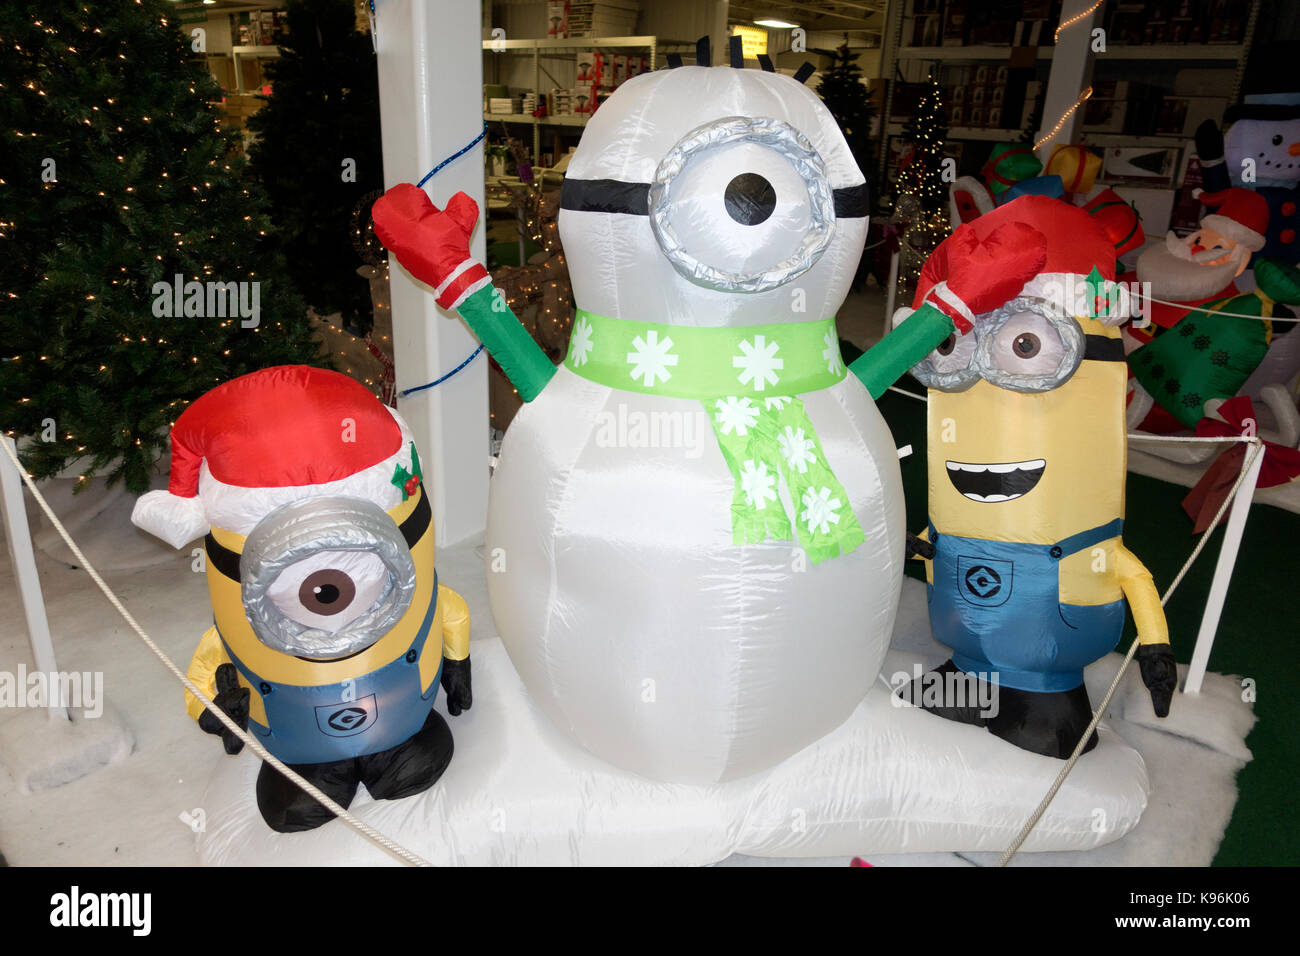 the minions celebrating christmas as a snowman and the elves inflatable yard decorations st paul - Minion Christmas Yard Decorations